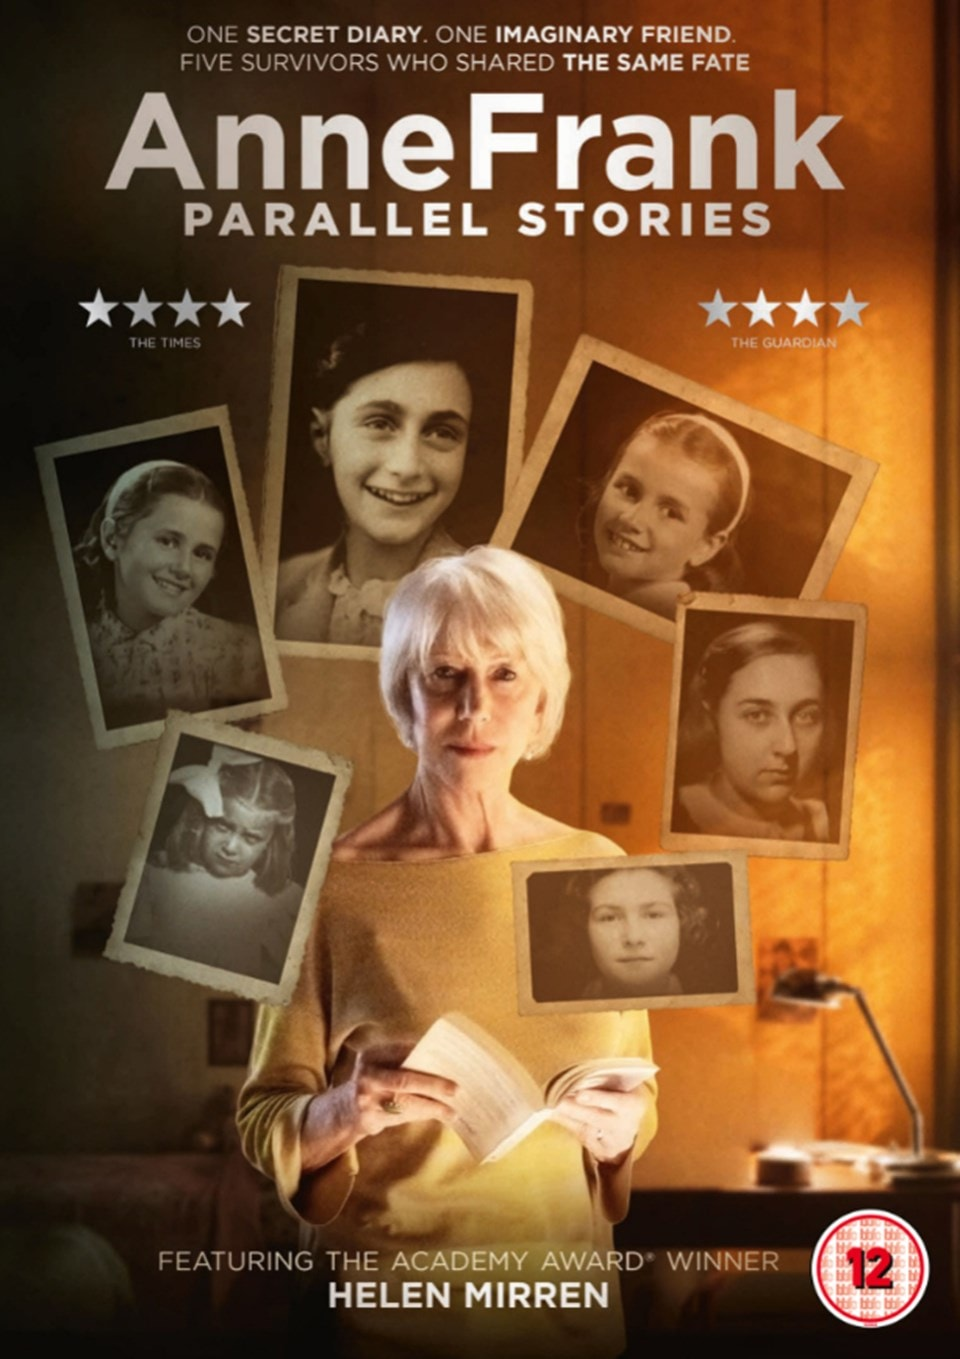 #AnneFrank - Parallel Stories - 1